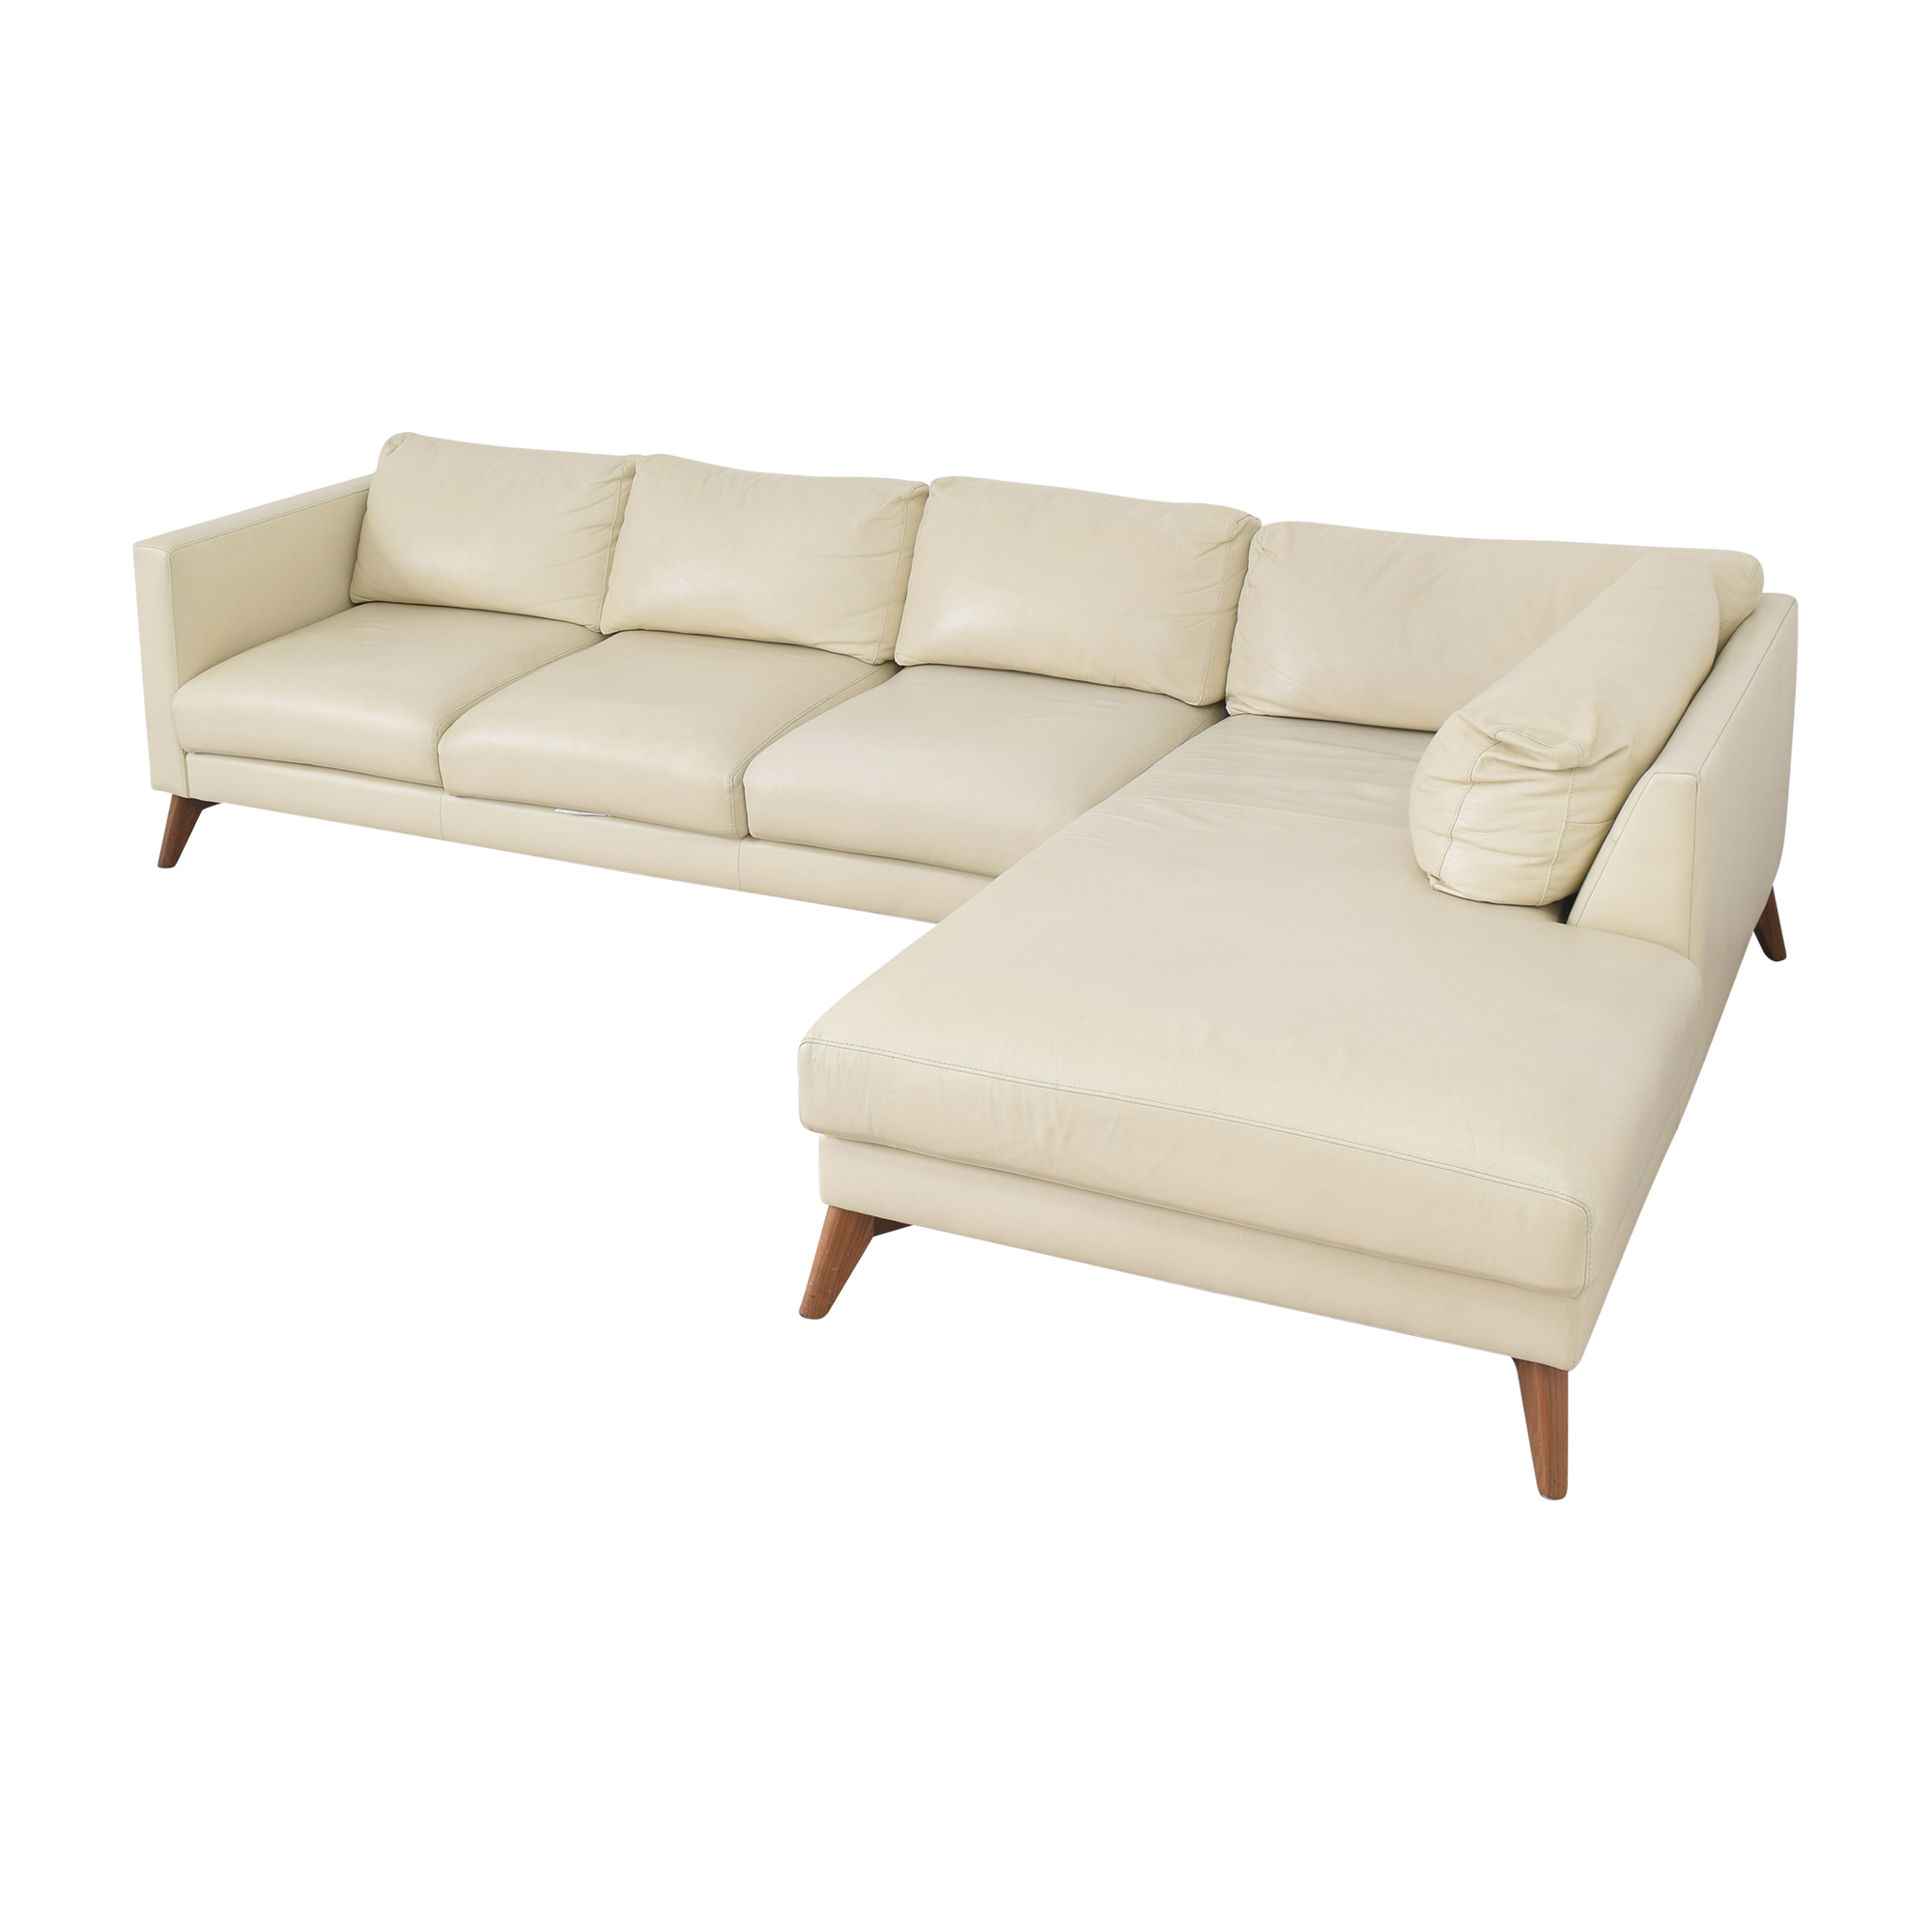 Elite Leather Company Elite Leather Company Burbank Chaise Sectional Sofa used